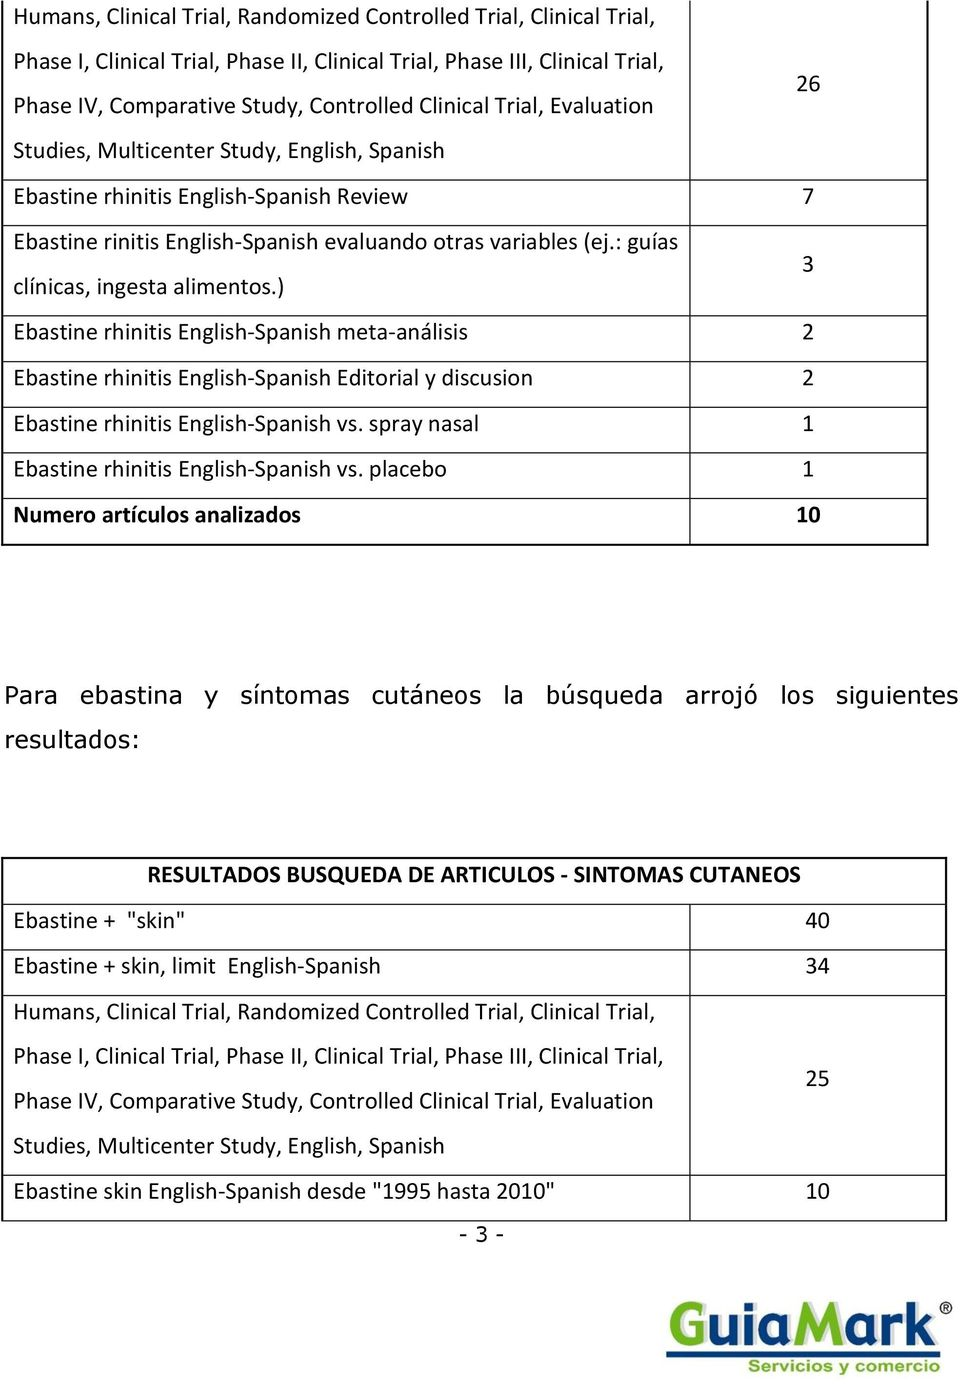 : guías clínicas, ingesta alimentos.) 3 Ebastine rhinitis English-Spanish meta-análisis 2 Ebastine rhinitis English-Spanish Editorial y discusion 2 Ebastine rhinitis English-Spanish vs.